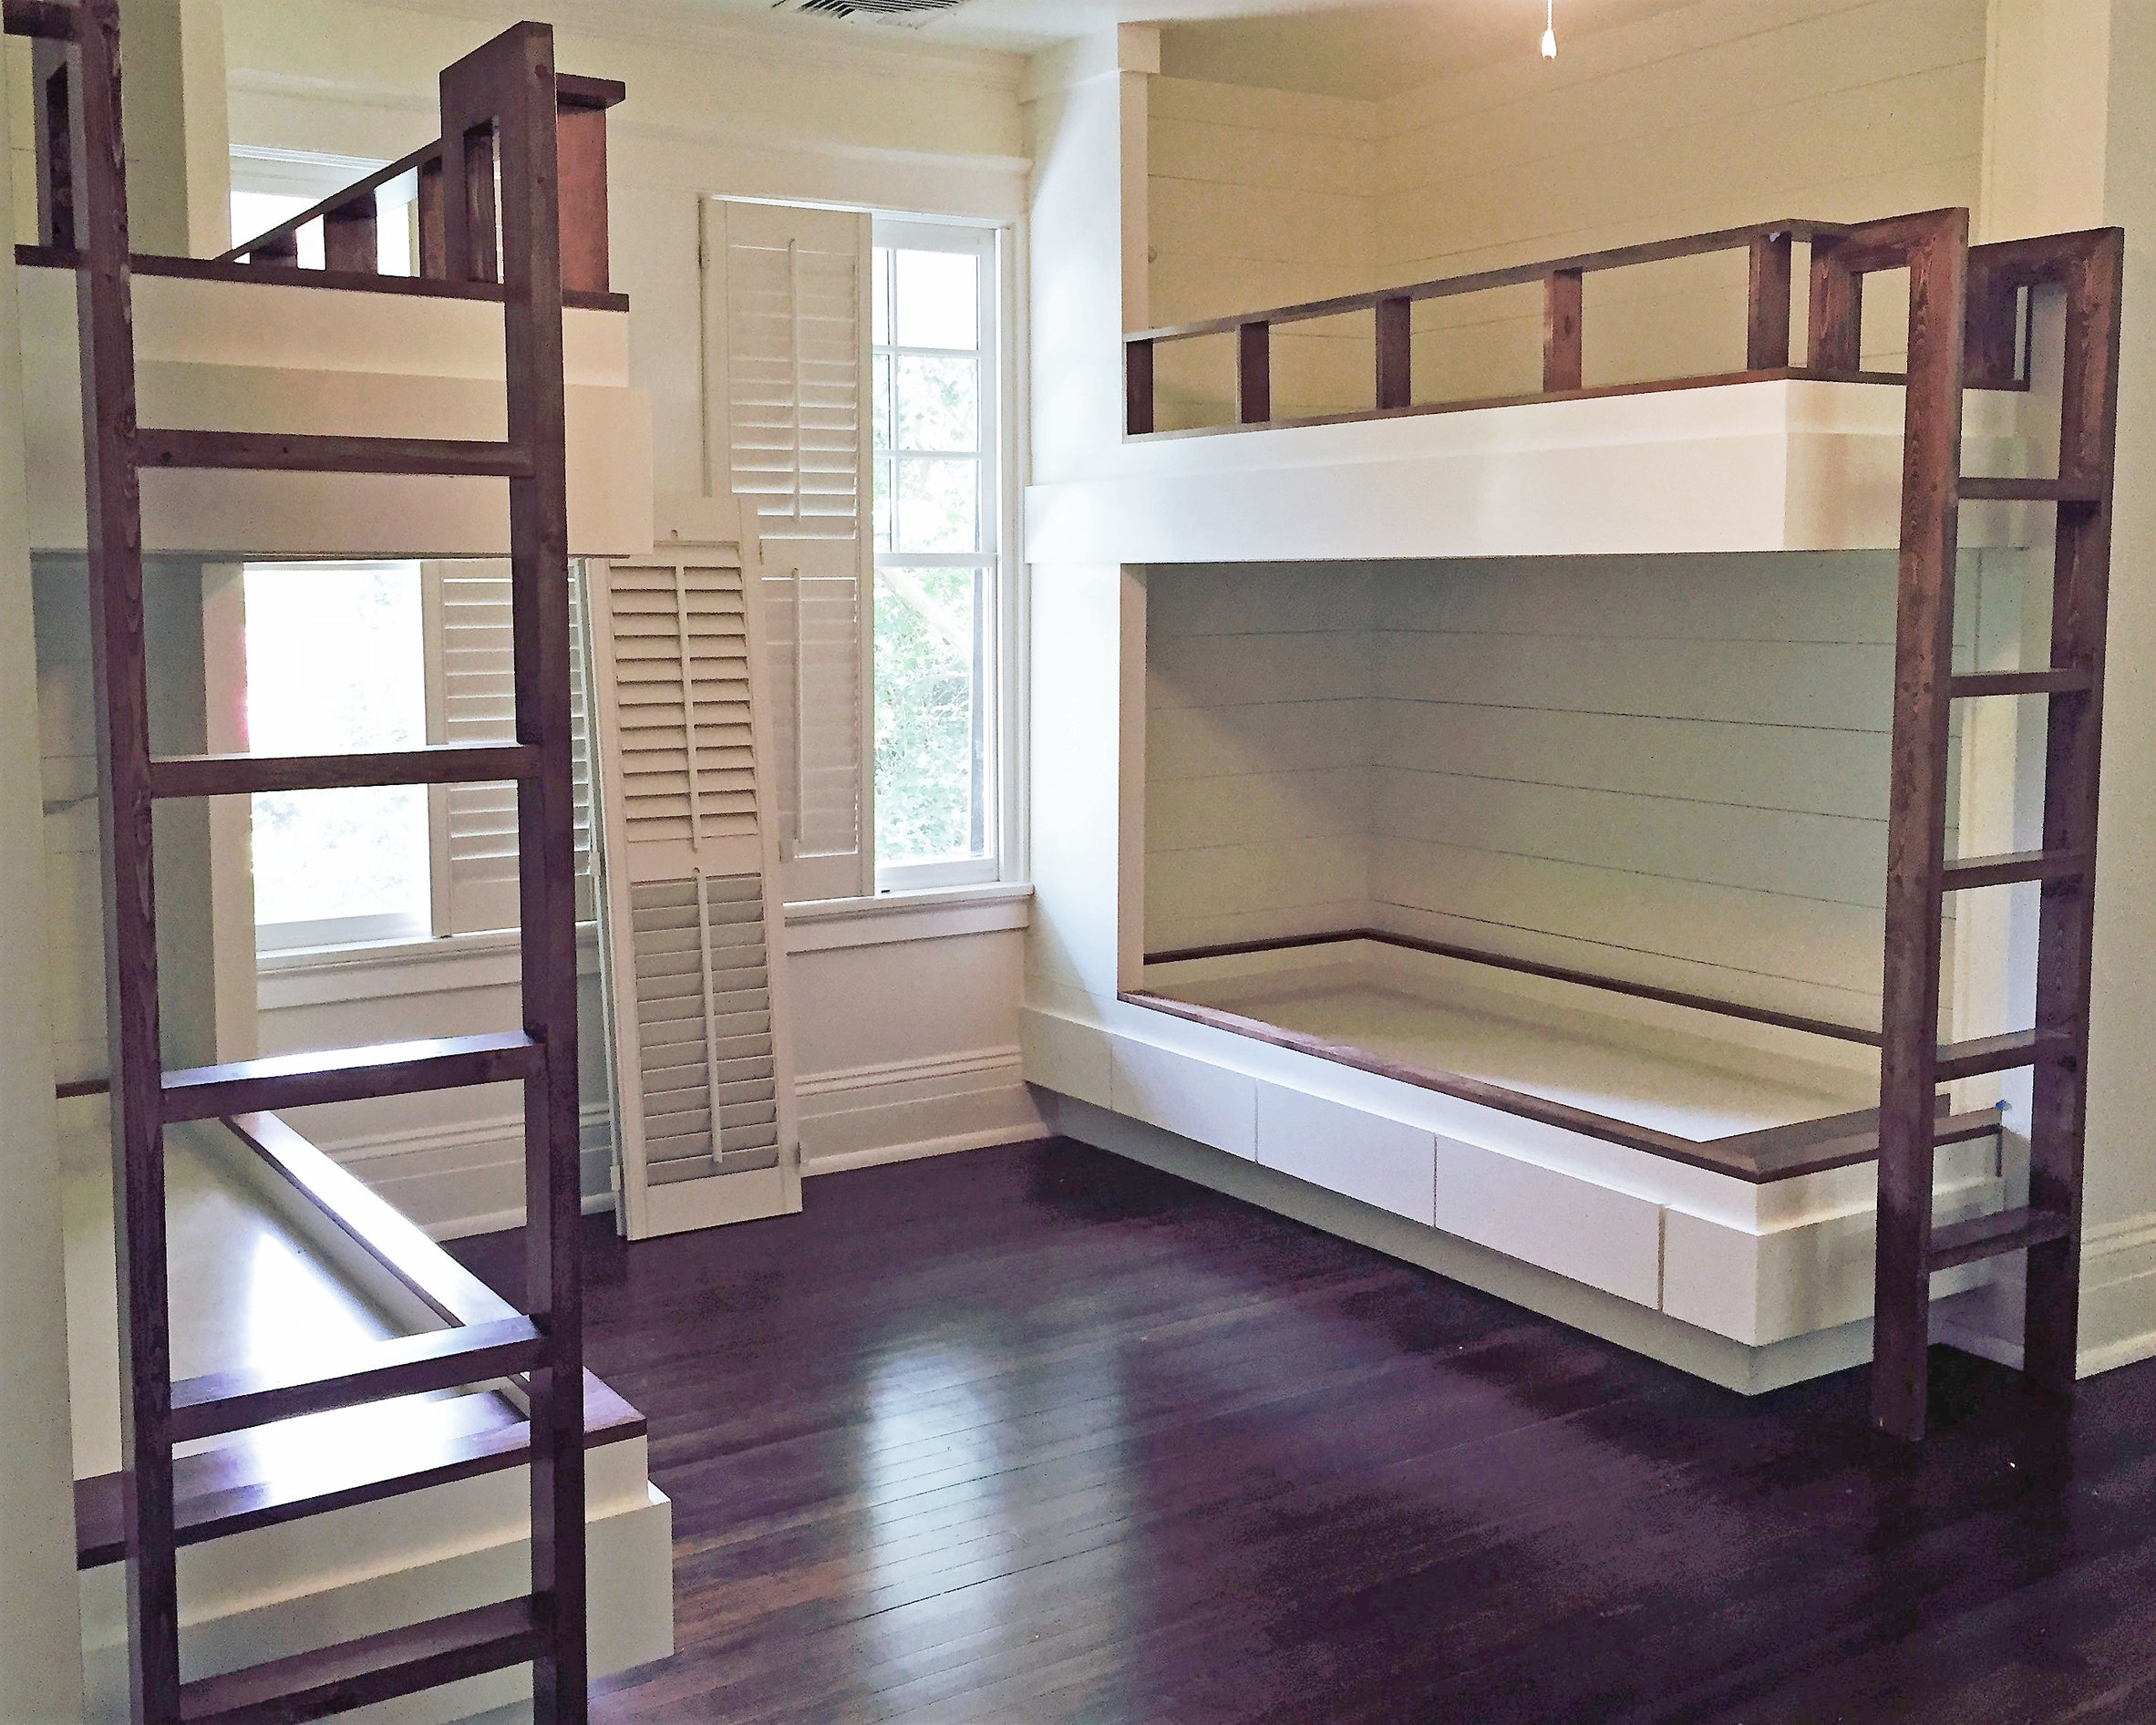 Danforth Designs - Bunk Beds.jpg